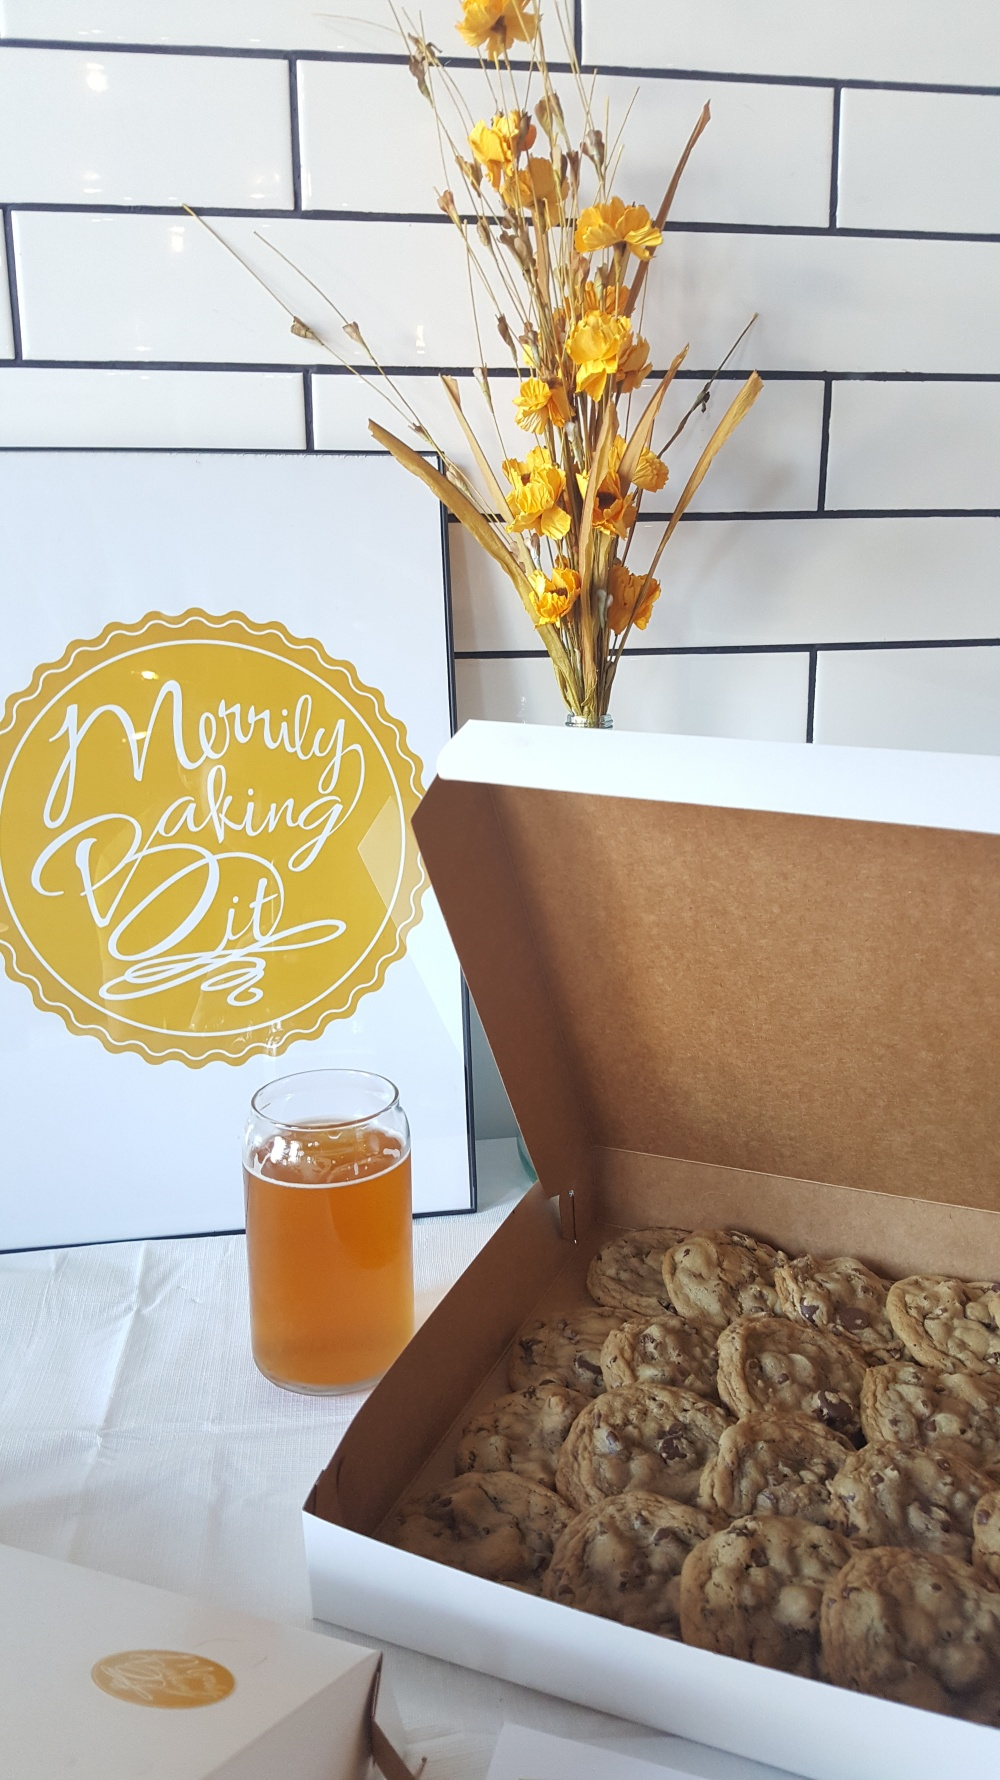 Merrily Baking It sign, beer, cookies, flower